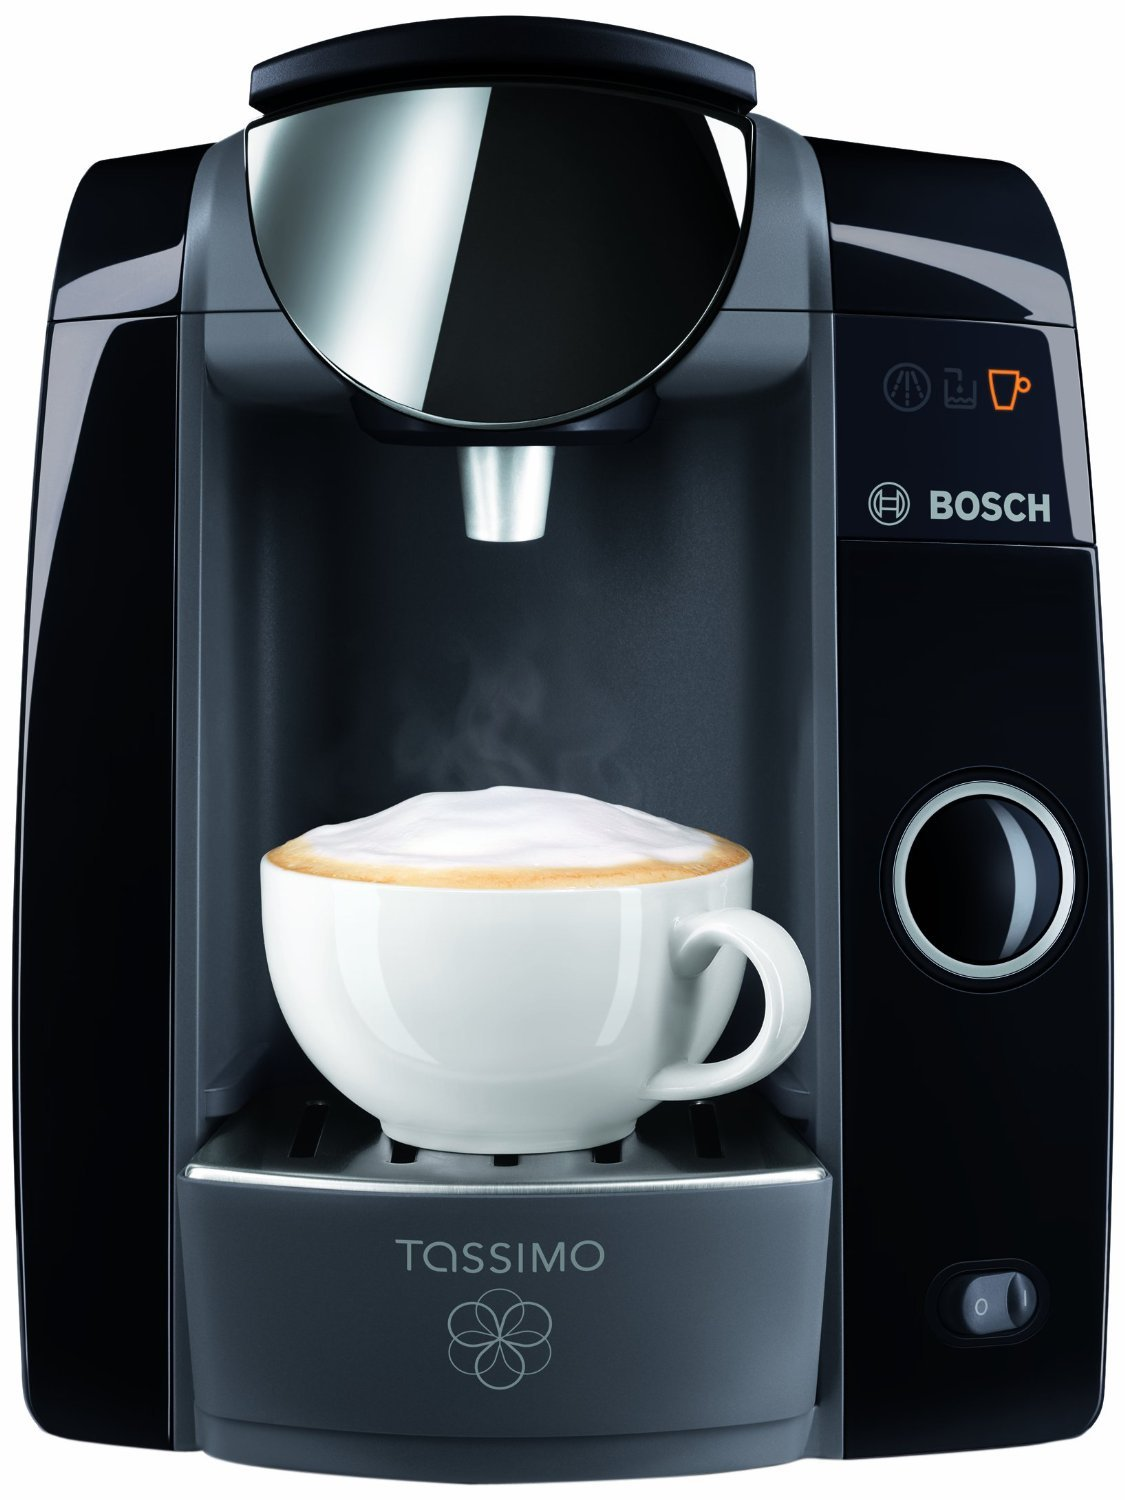 Bosch TAS4752UC Tassimo T47 Plus Beverage System and Coffee Brewer. This is the updated T47 model , featuring Mavea Maxtra Water Filtration Sytem